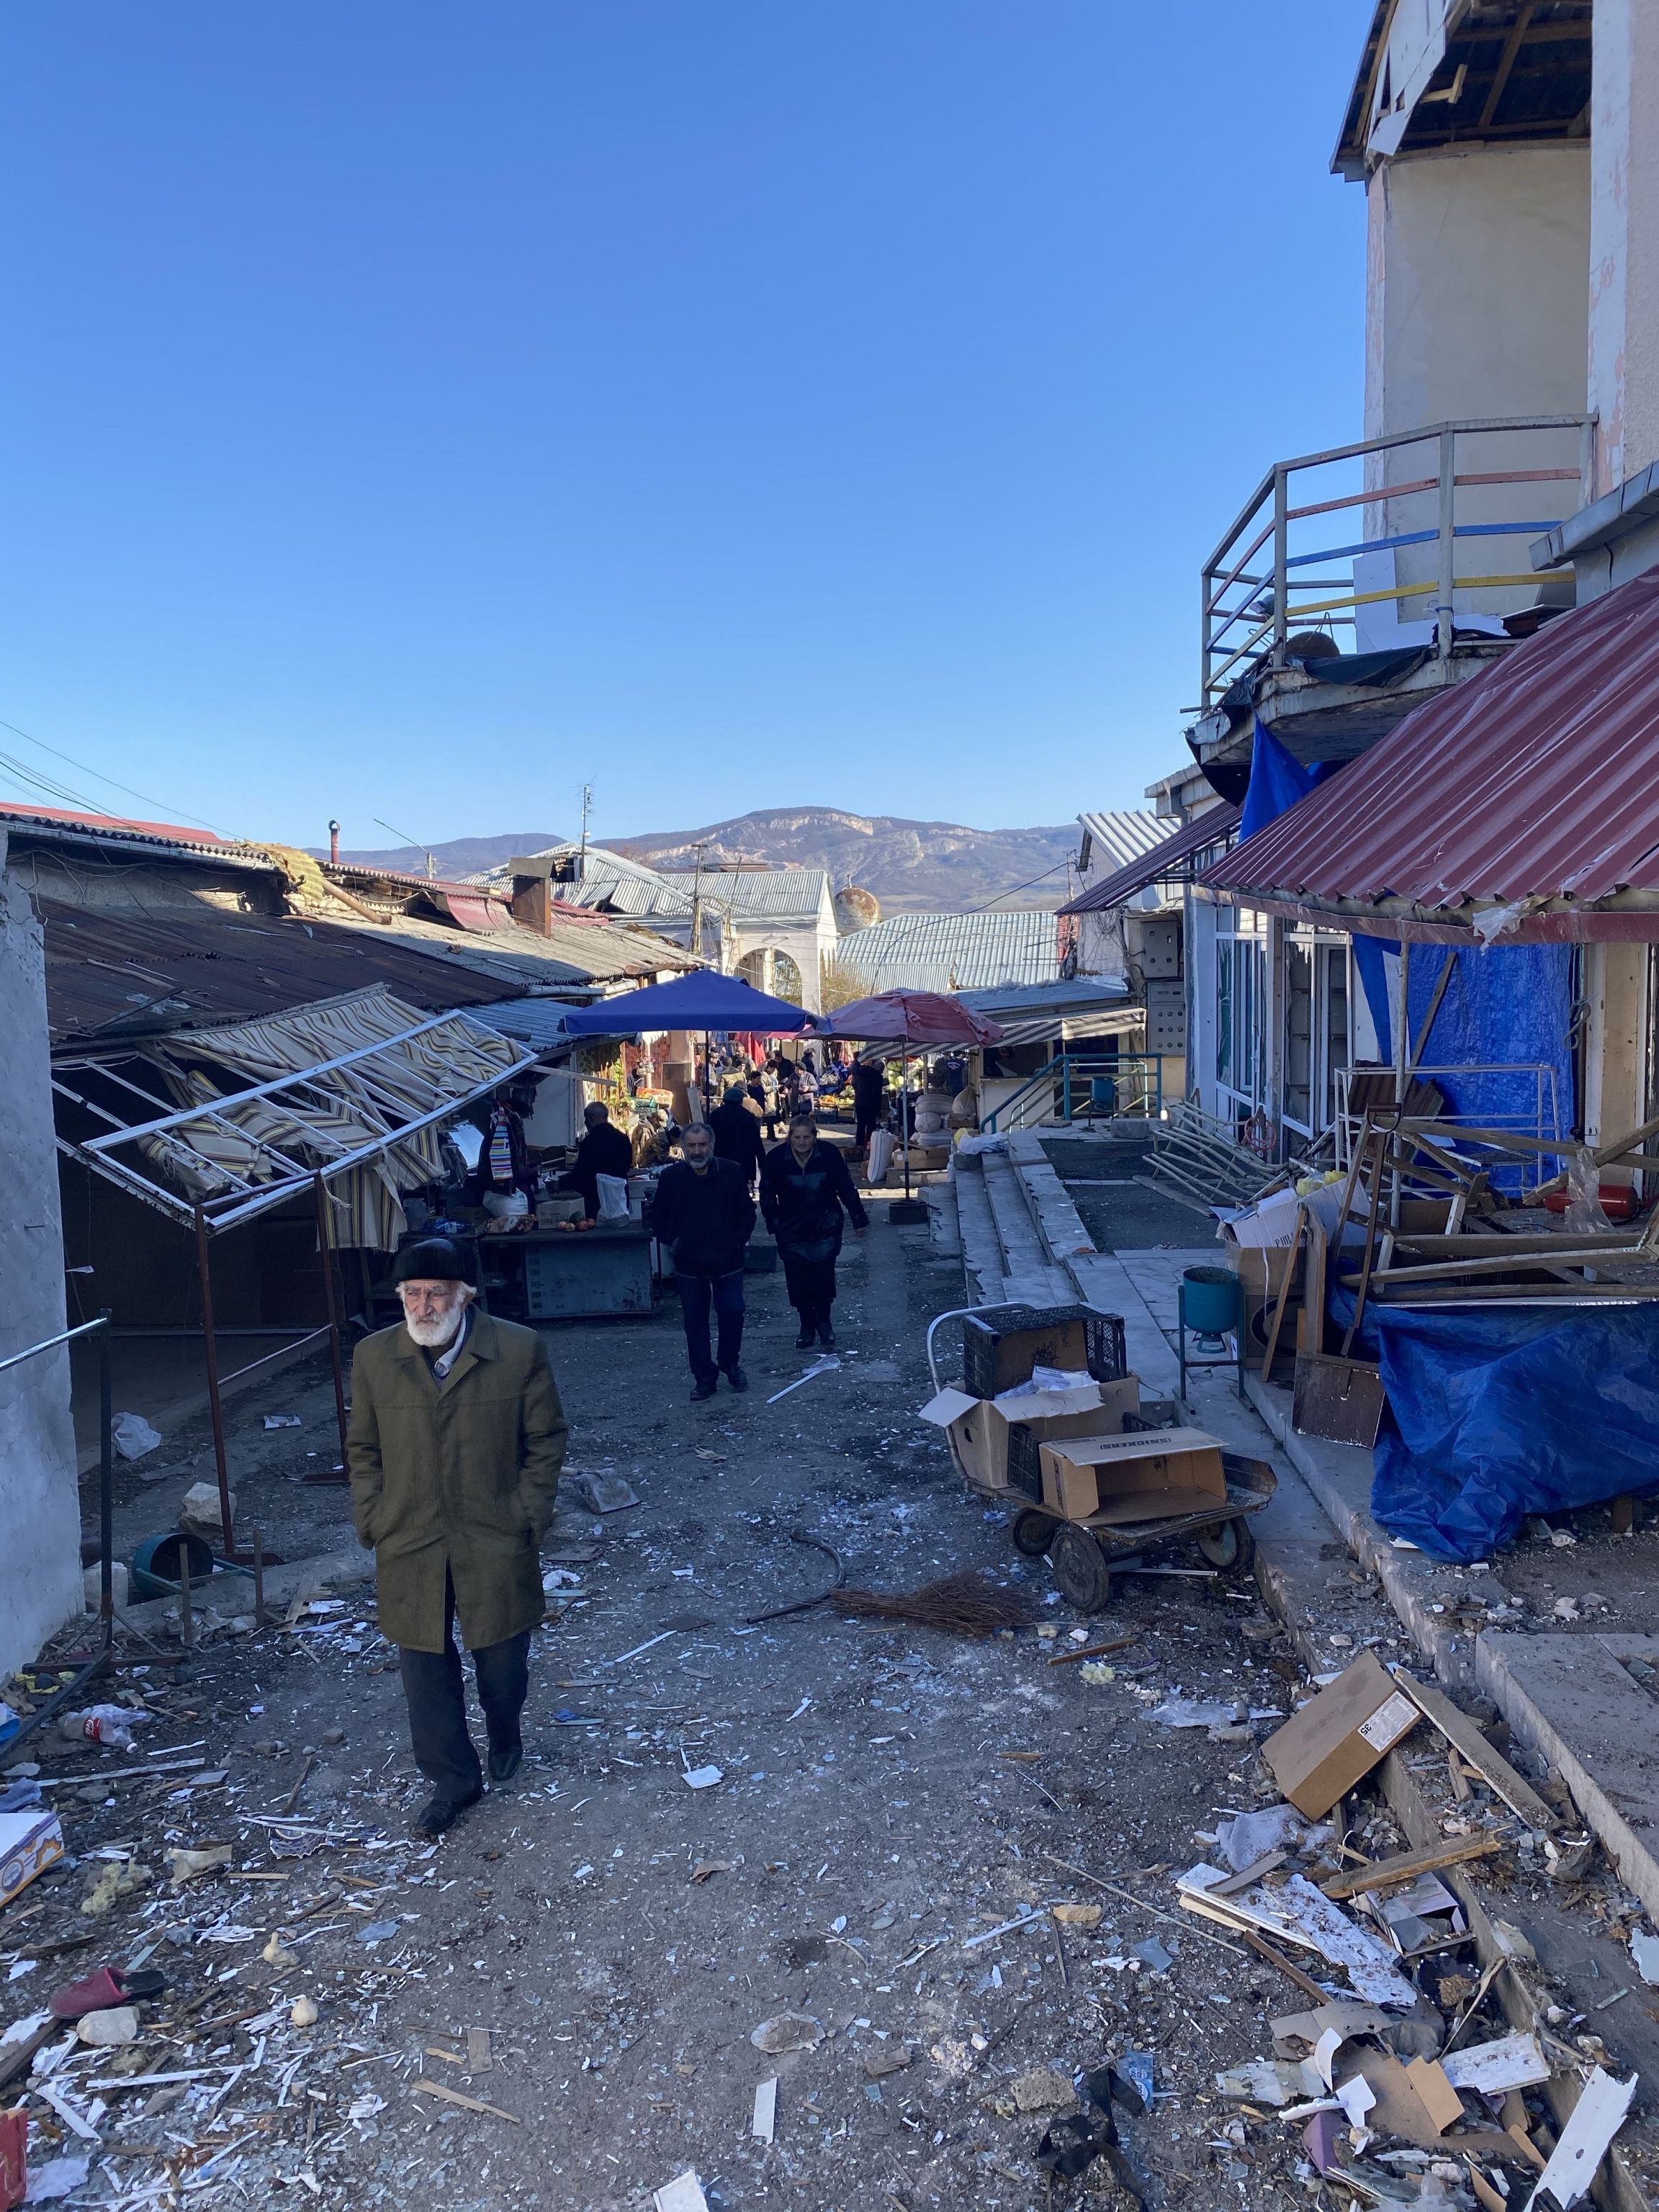 Business slowly restarts in the market of Stepanakert, the de facto capital of Nagorno-Karabakh, after being shelled during the war.